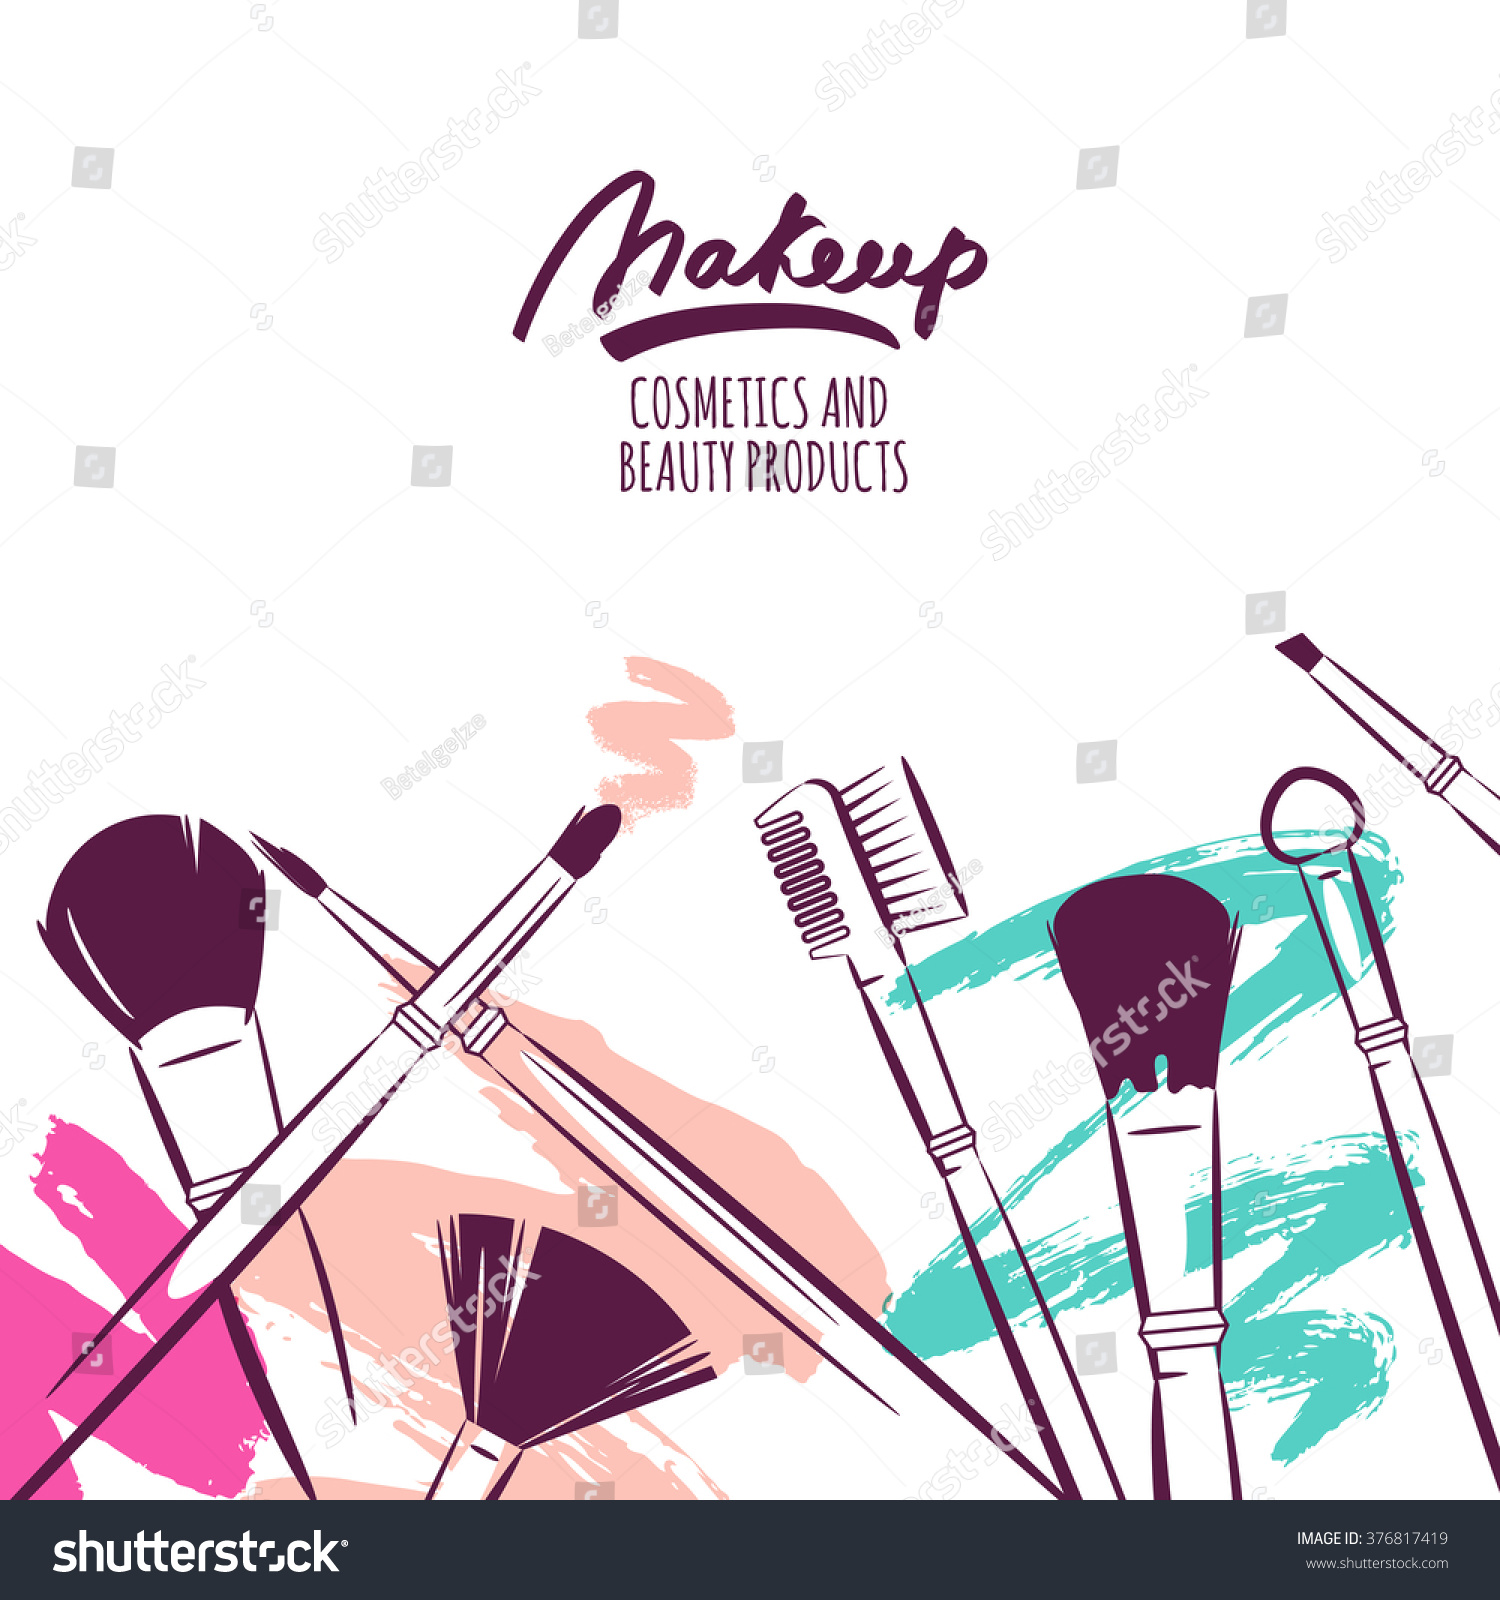 Watercolor hand drawn illustration makeup brushes stock for Abstract beauty salon